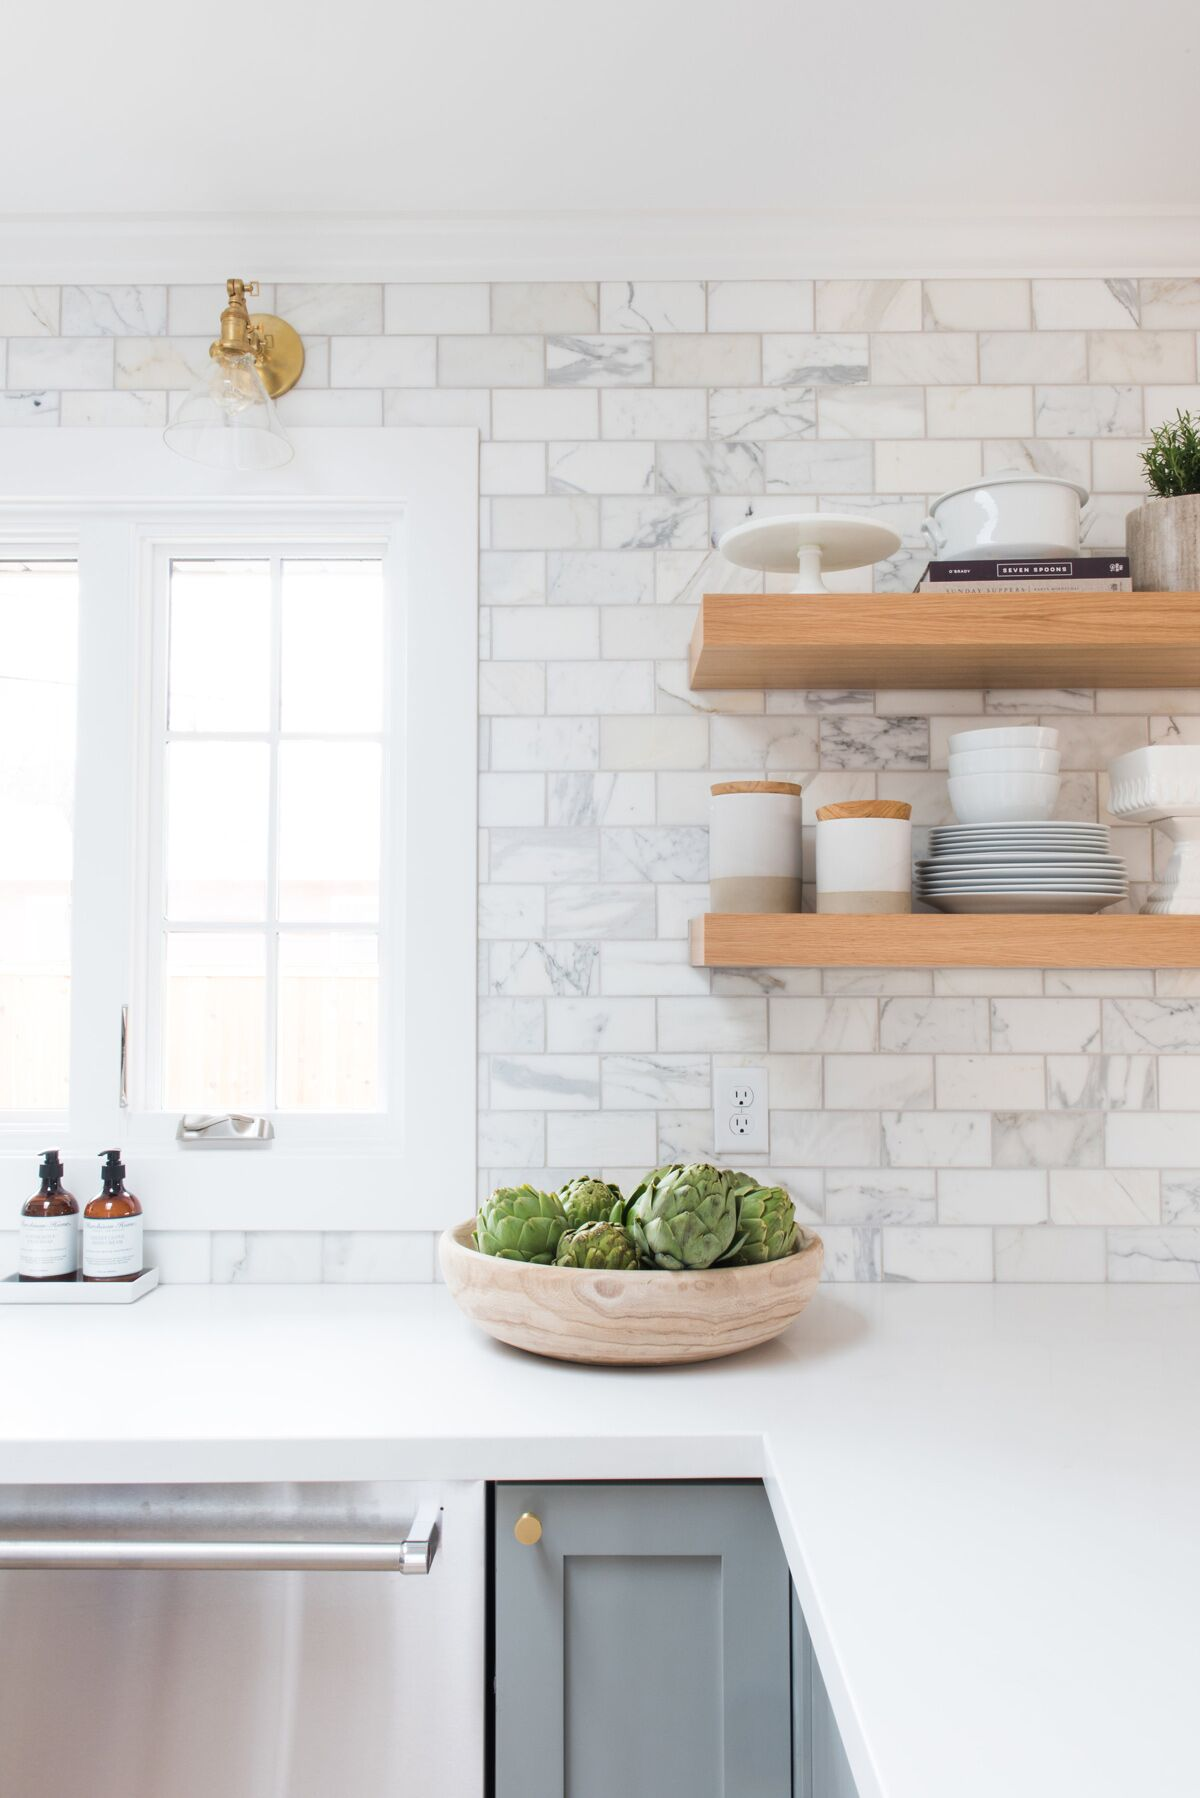 20 Kitchen Backsplash Ideas That Totally Steal The Show